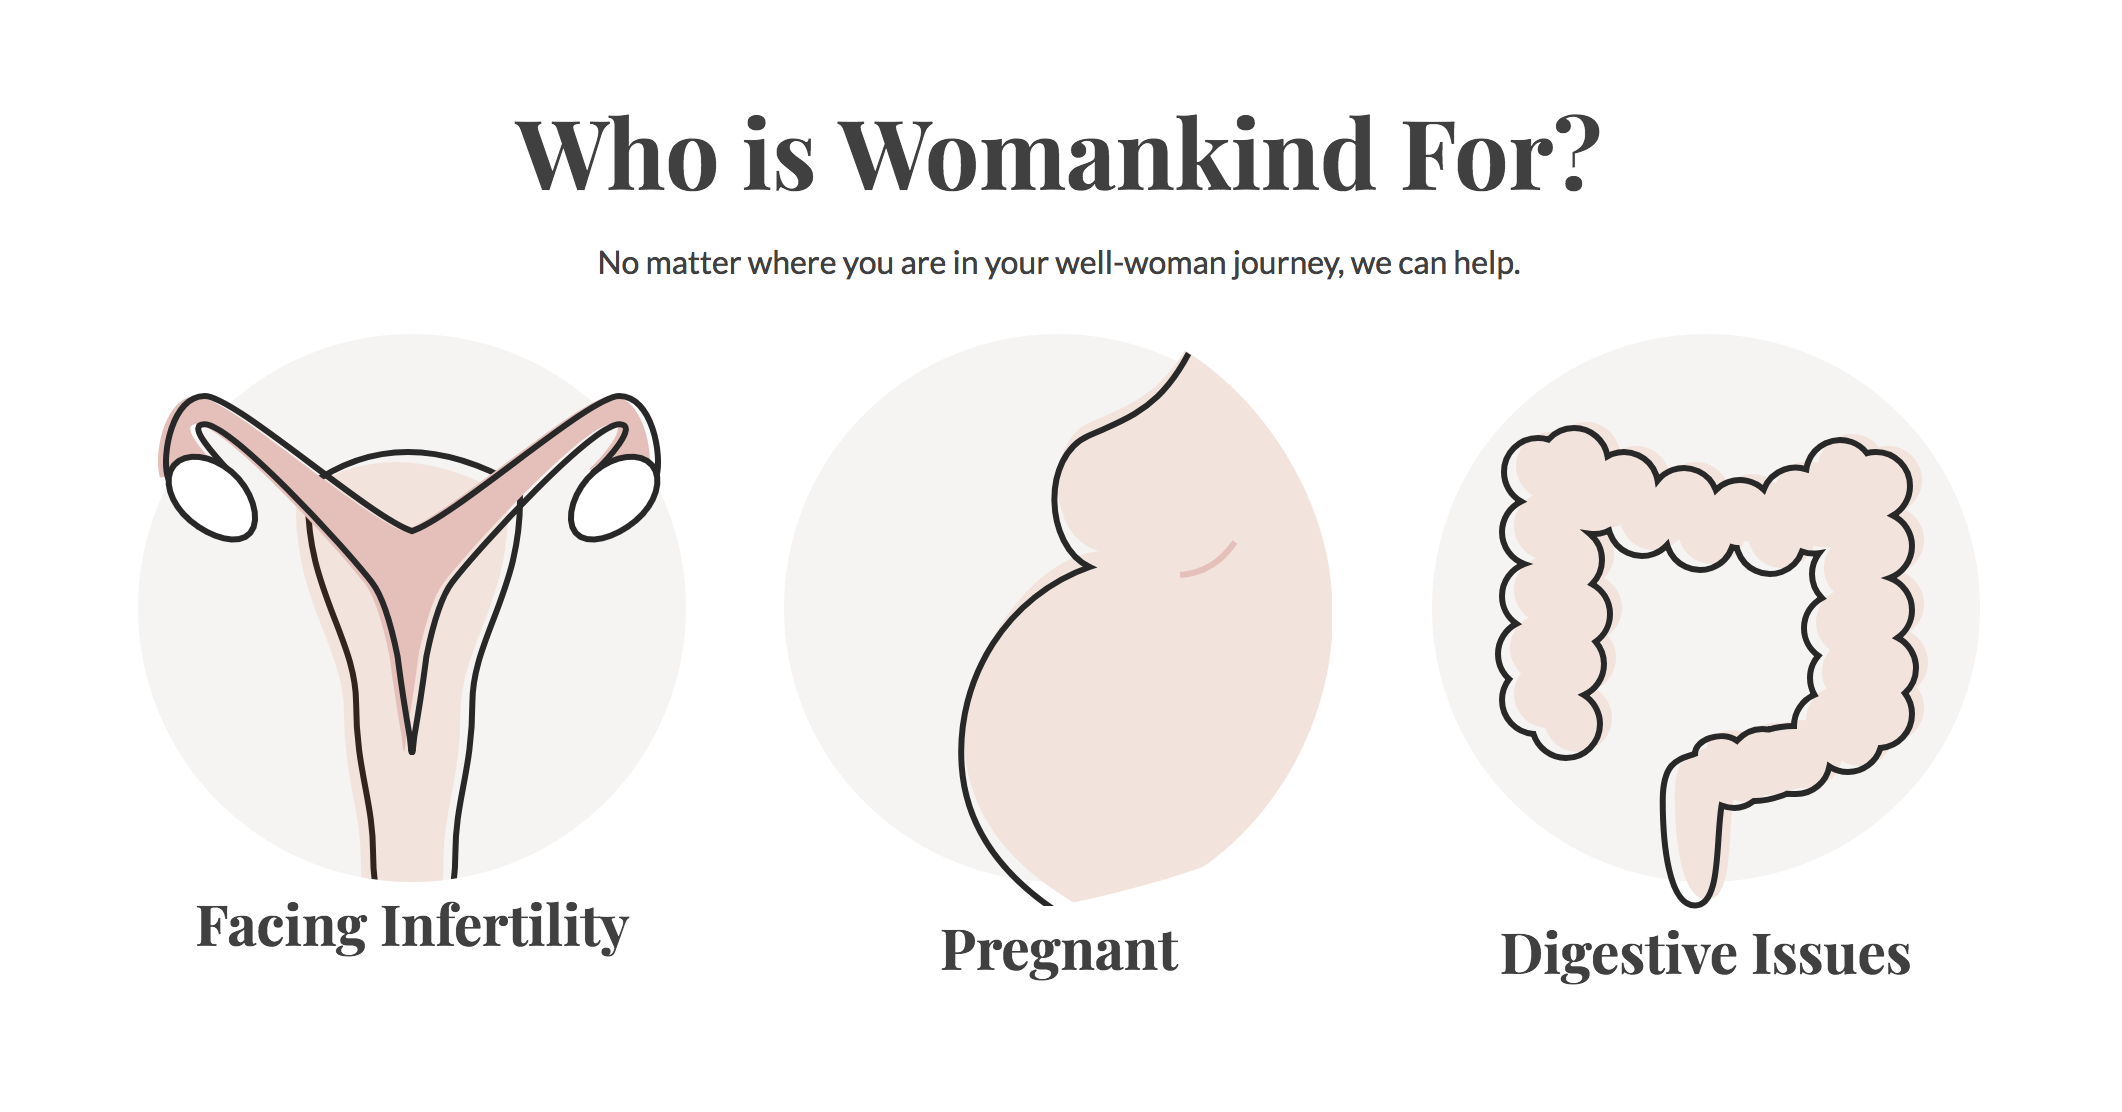 Womankind is for